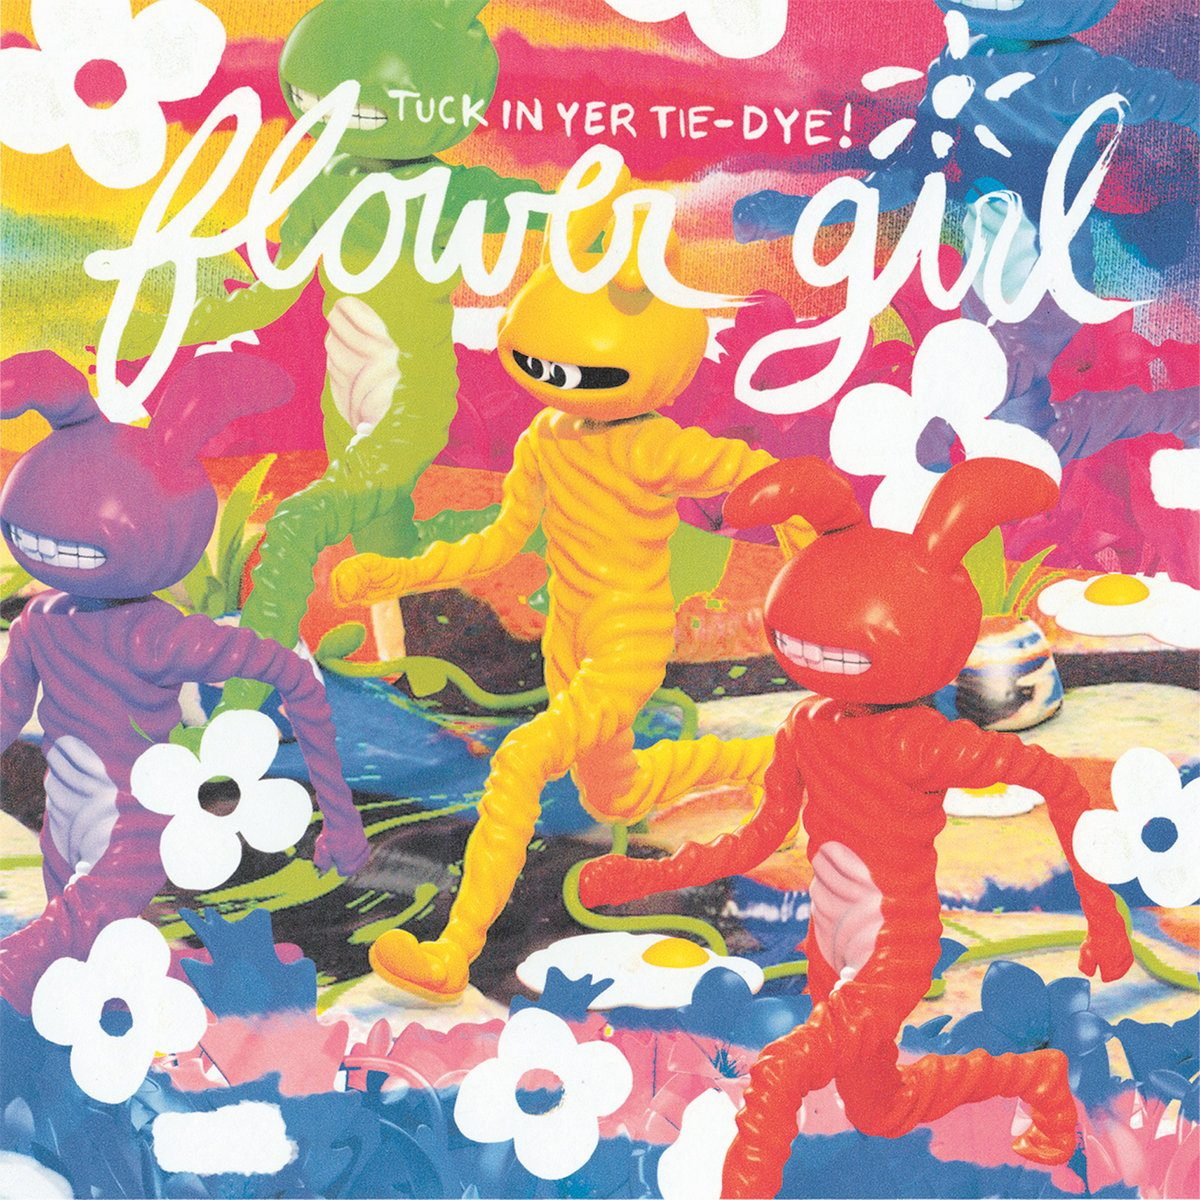 Flower Girl - Tuck In Your Tie Dye